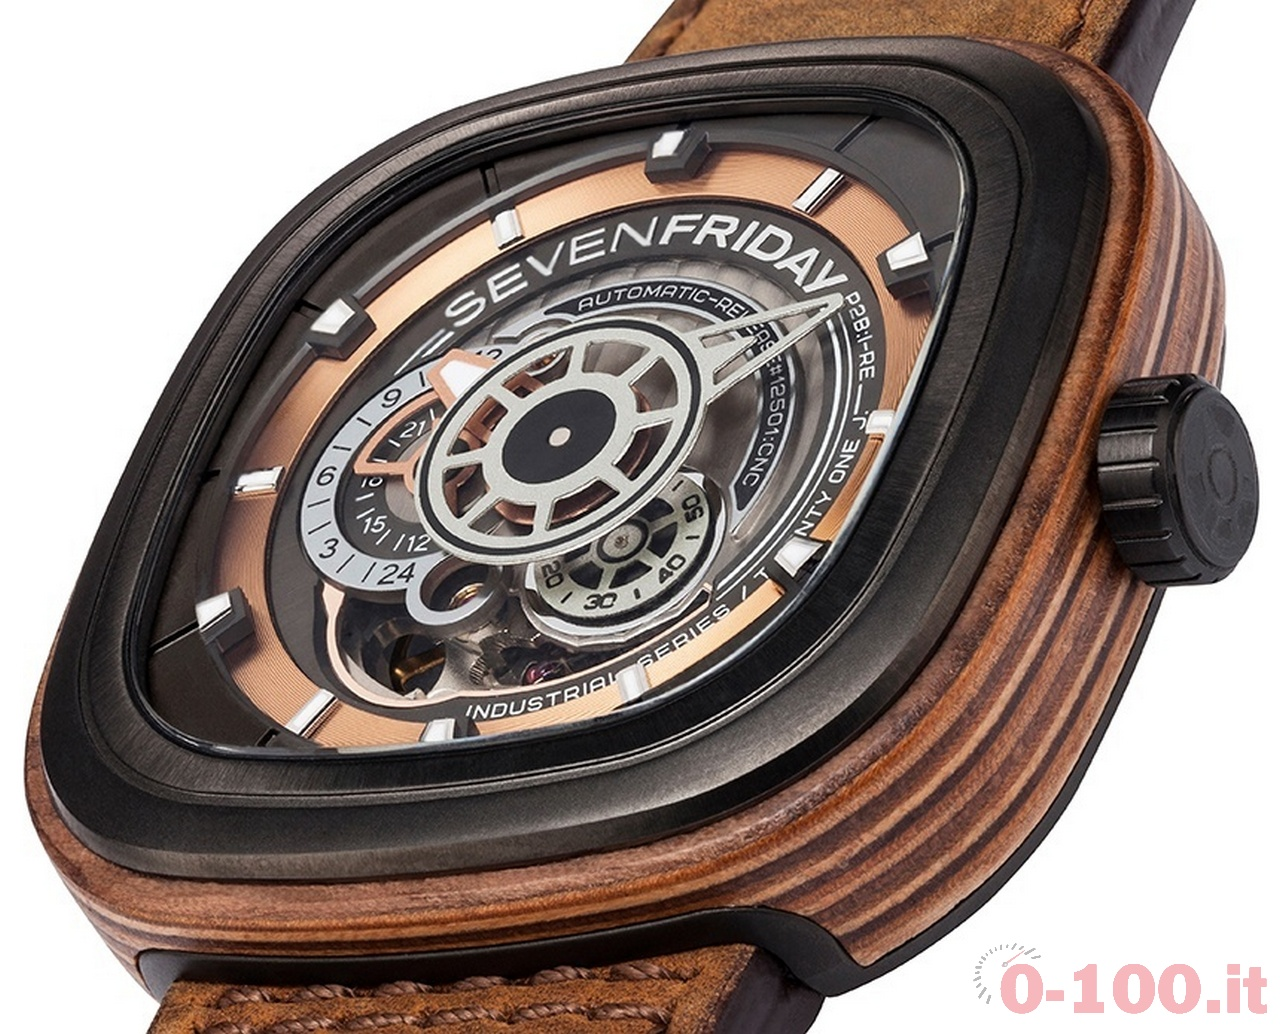 sevenfriday-p2b03-woody-limited-edition-price-prezzo_0-1002